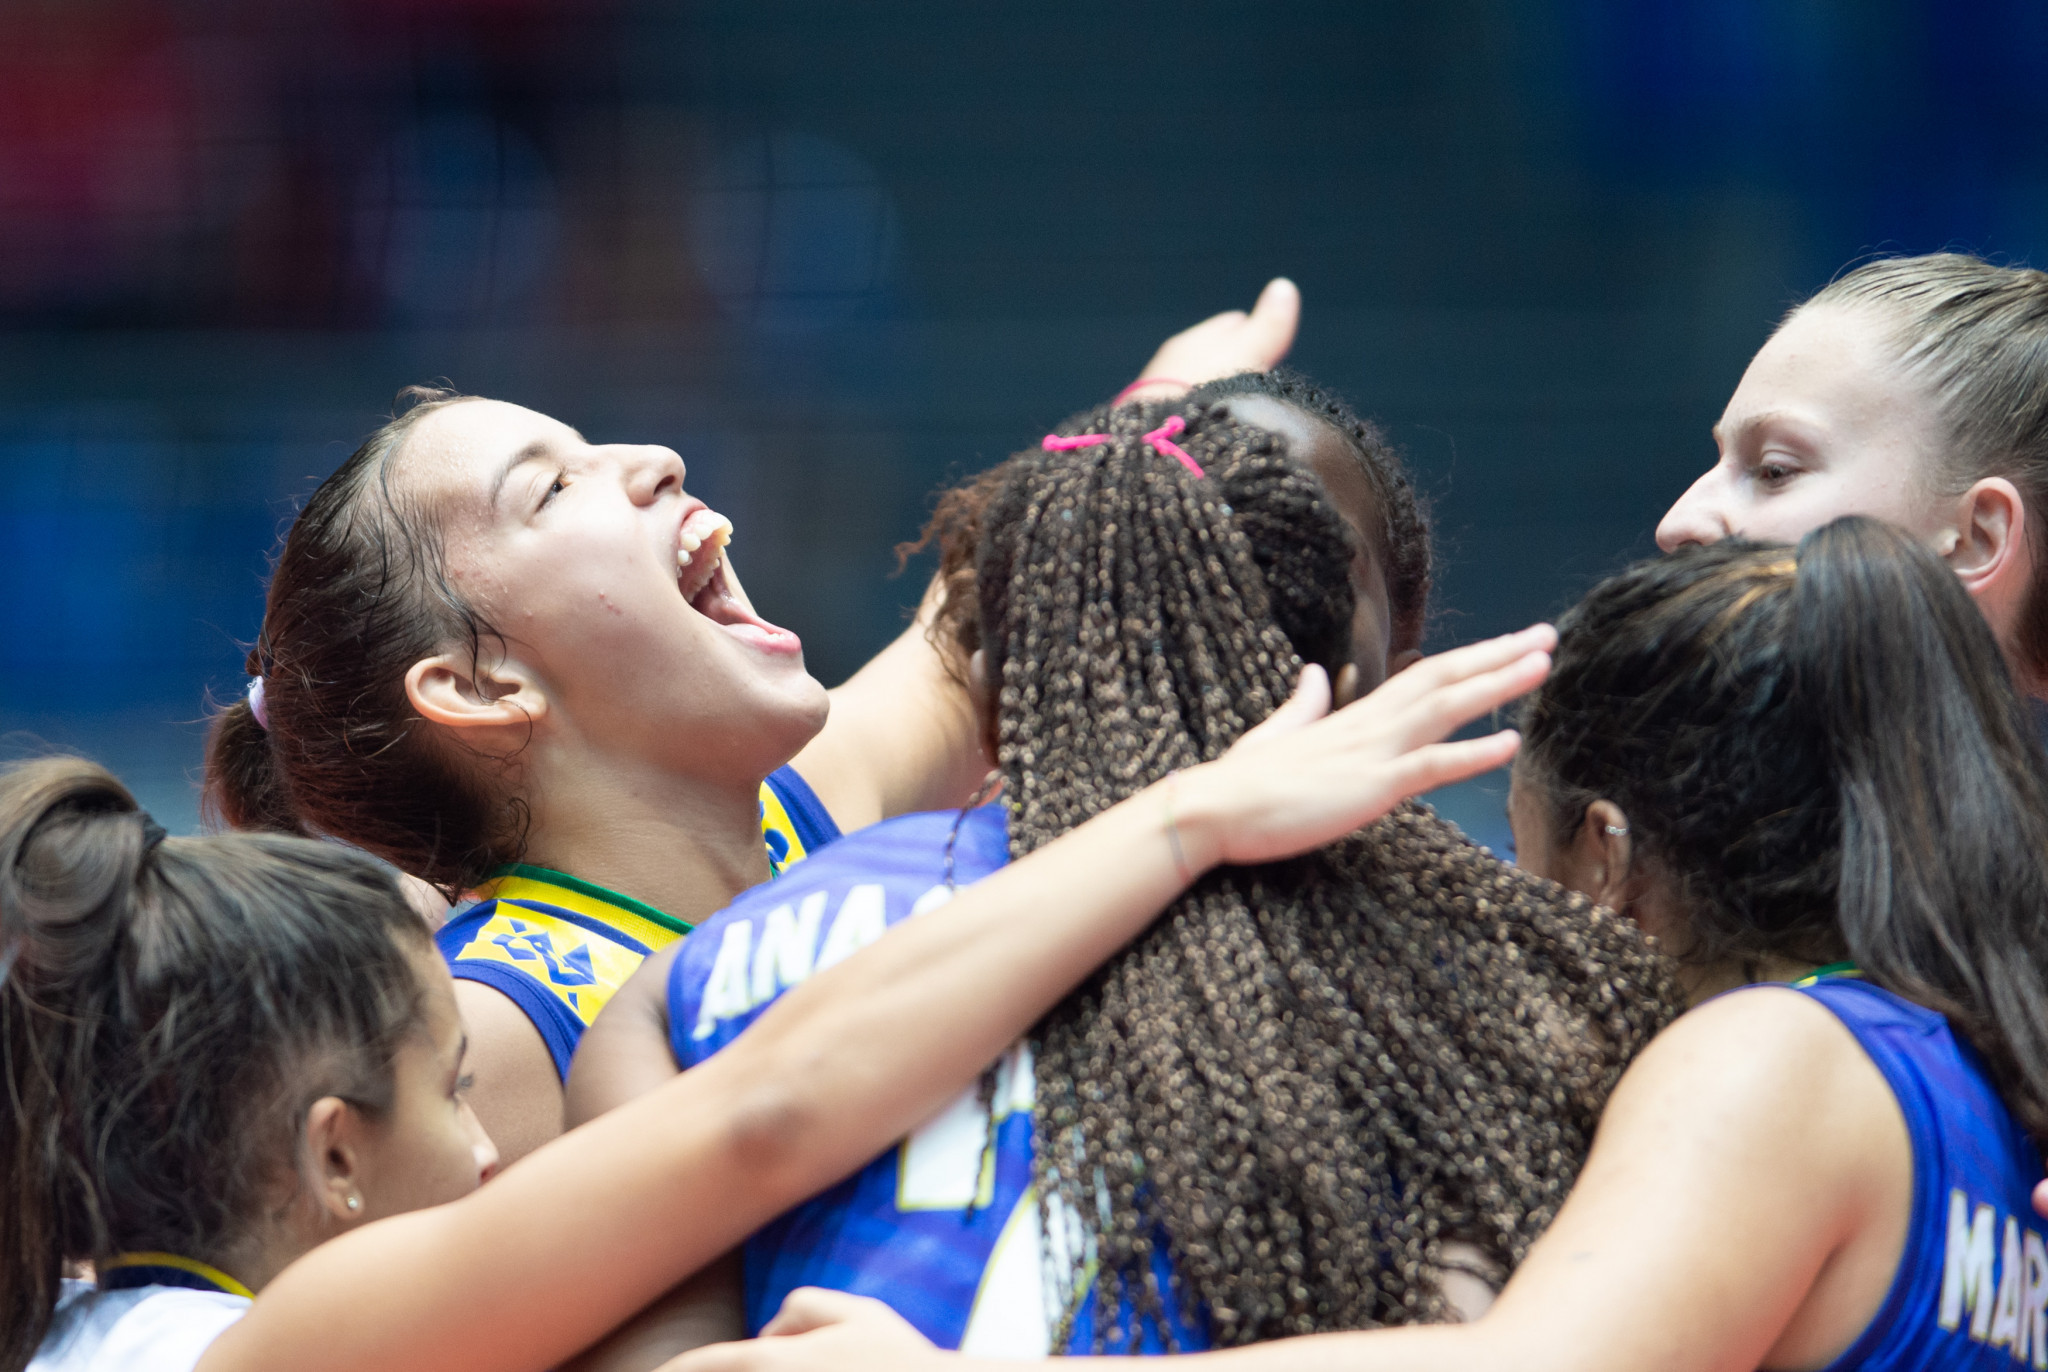 Three-times world champions Brazil enjoy the feel of a 3-0 win over Cameroon in their pool match today at the FIVB Girls' U18 World Championship in Egypt ©FIVB